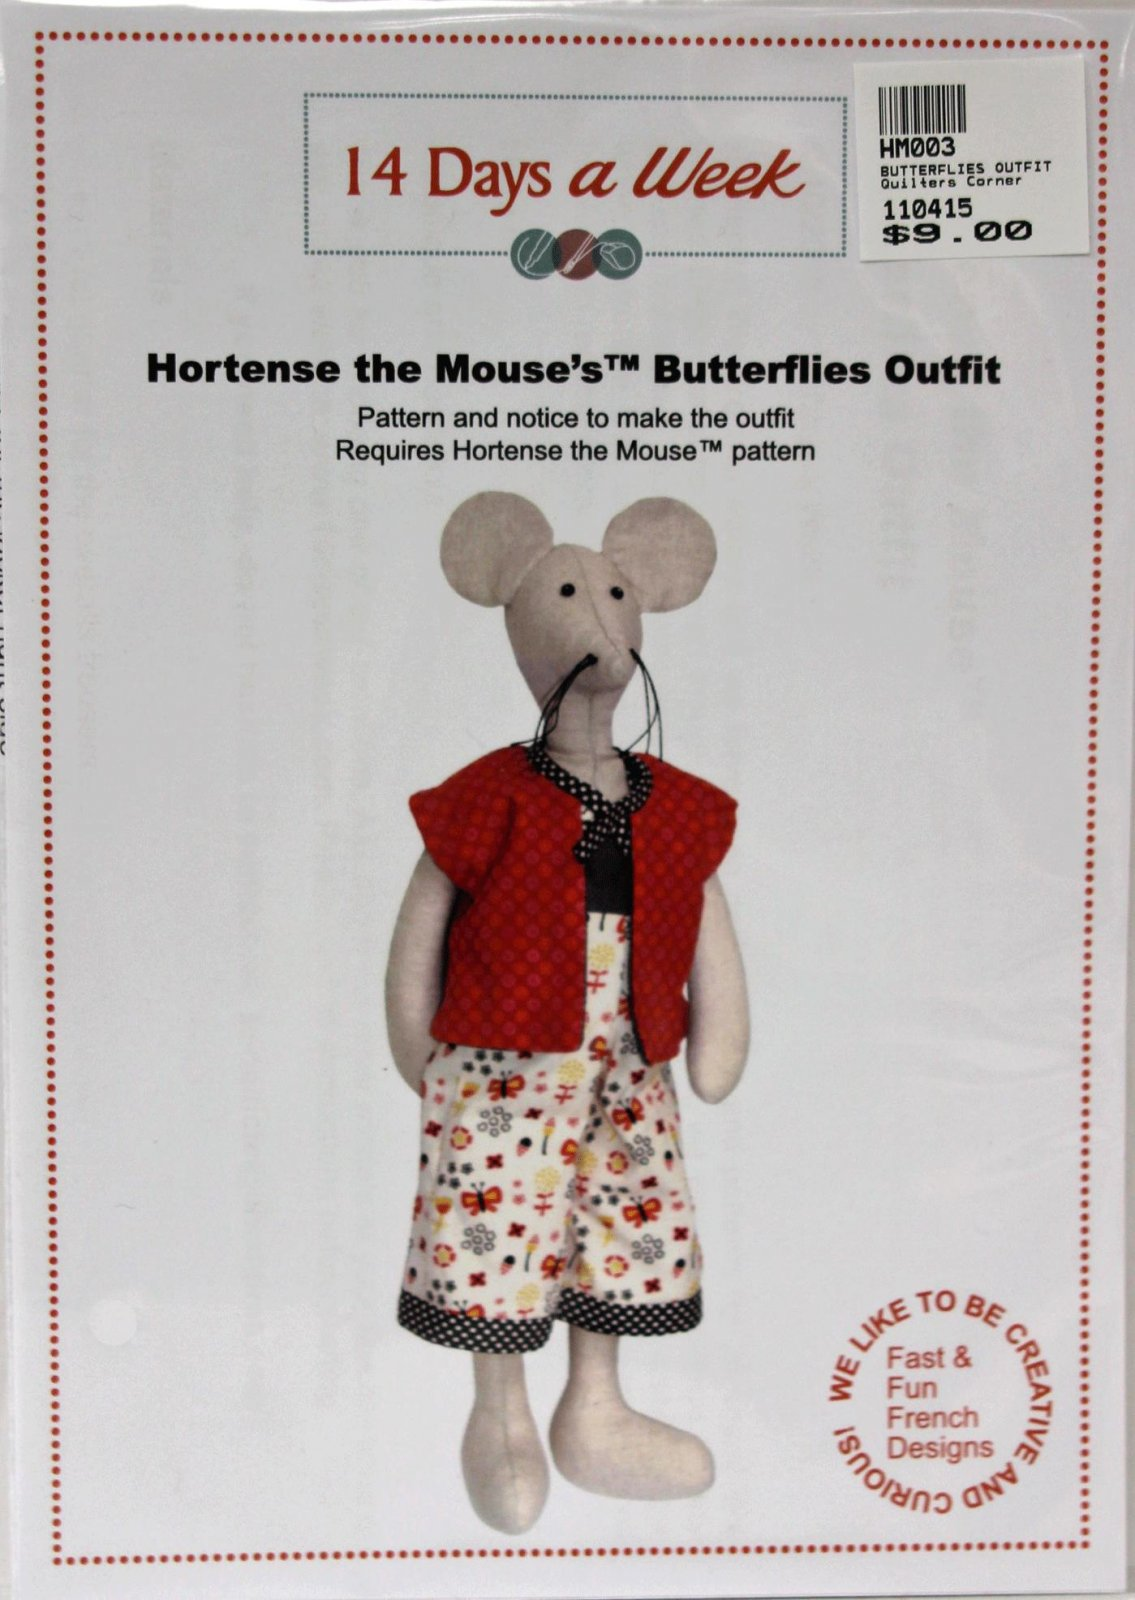 Hortense the Mouse's Butterflies Outfit Pattern